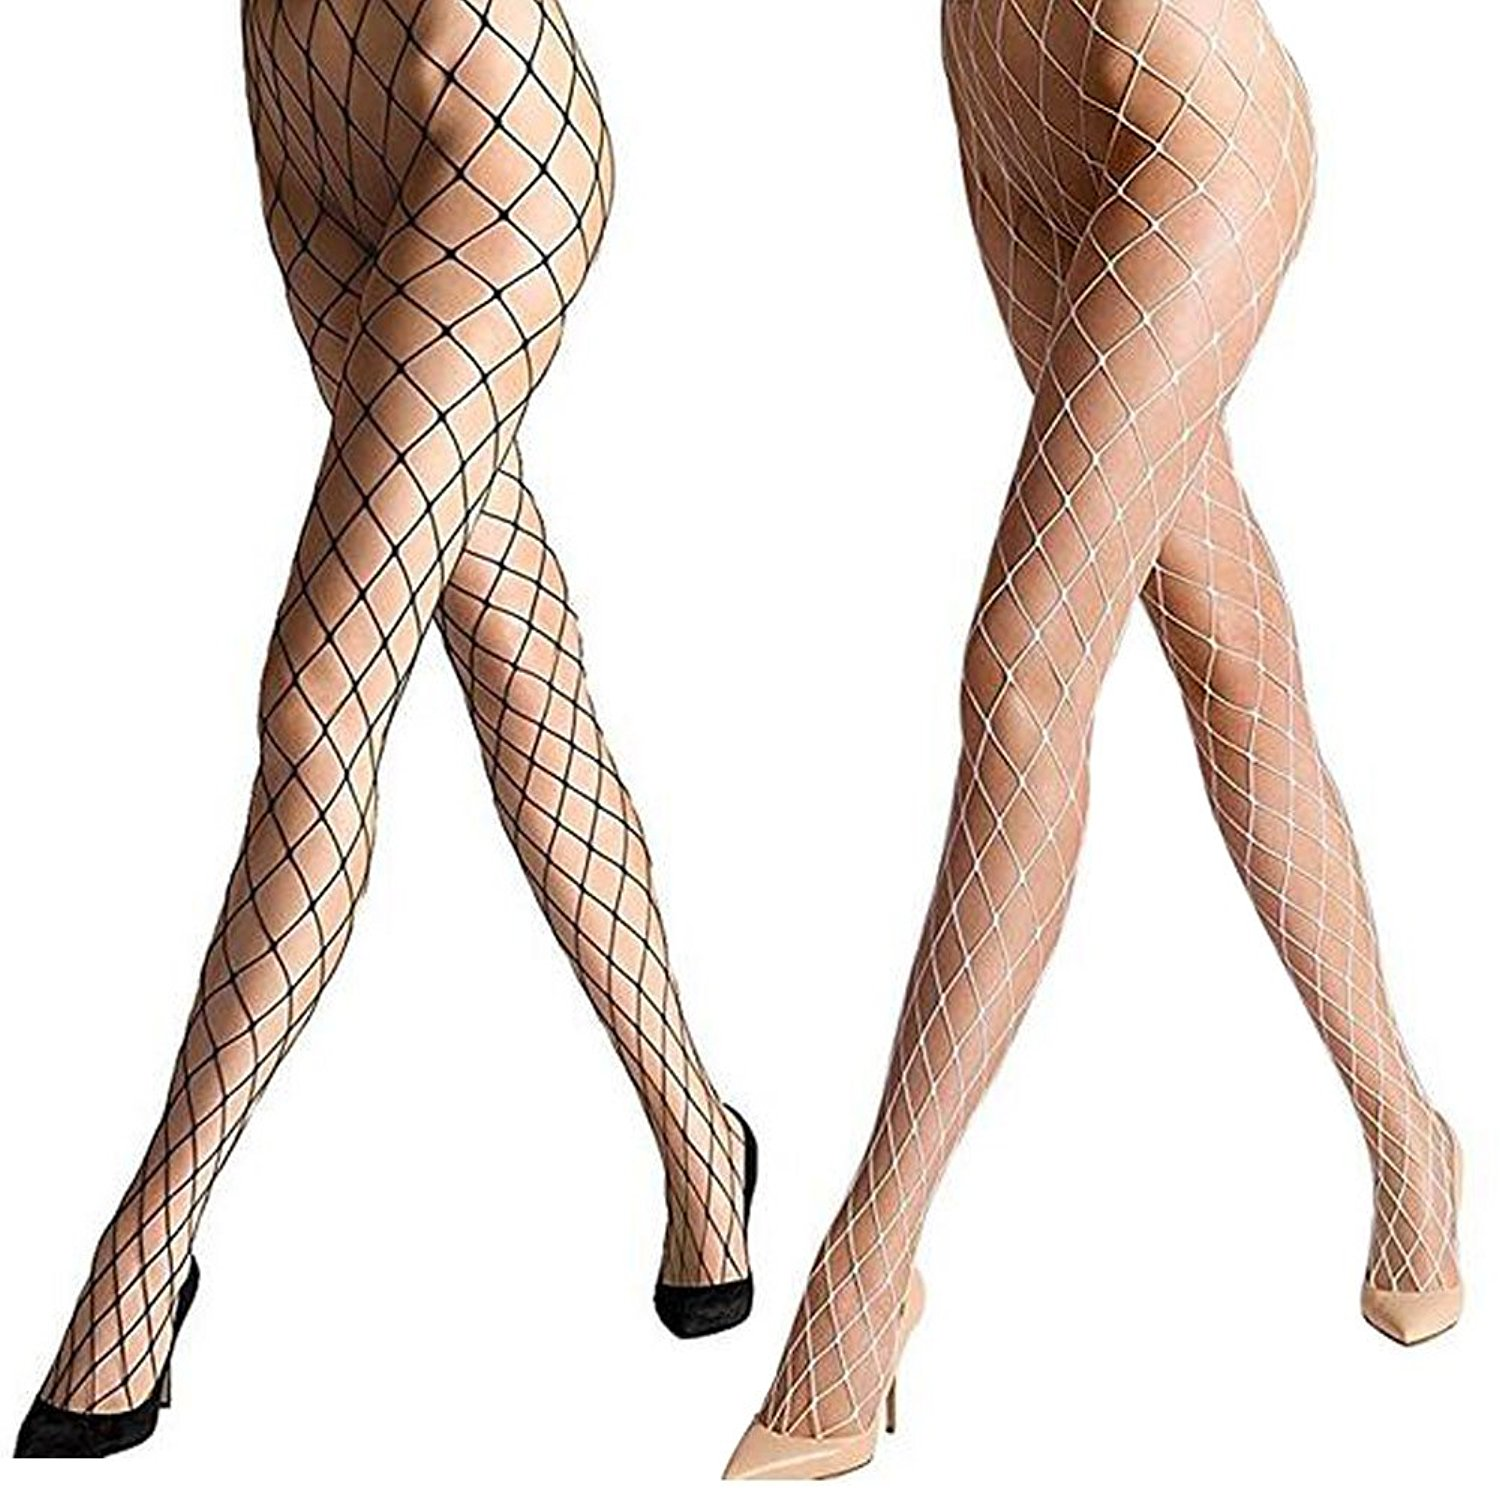 325e1ee319b Get Quotations · Women s Sexy Fishnet Pantyhose Sheer Lace Stocking Tights  Control Top Reinforced Toe Silk Sexy Panty Hose